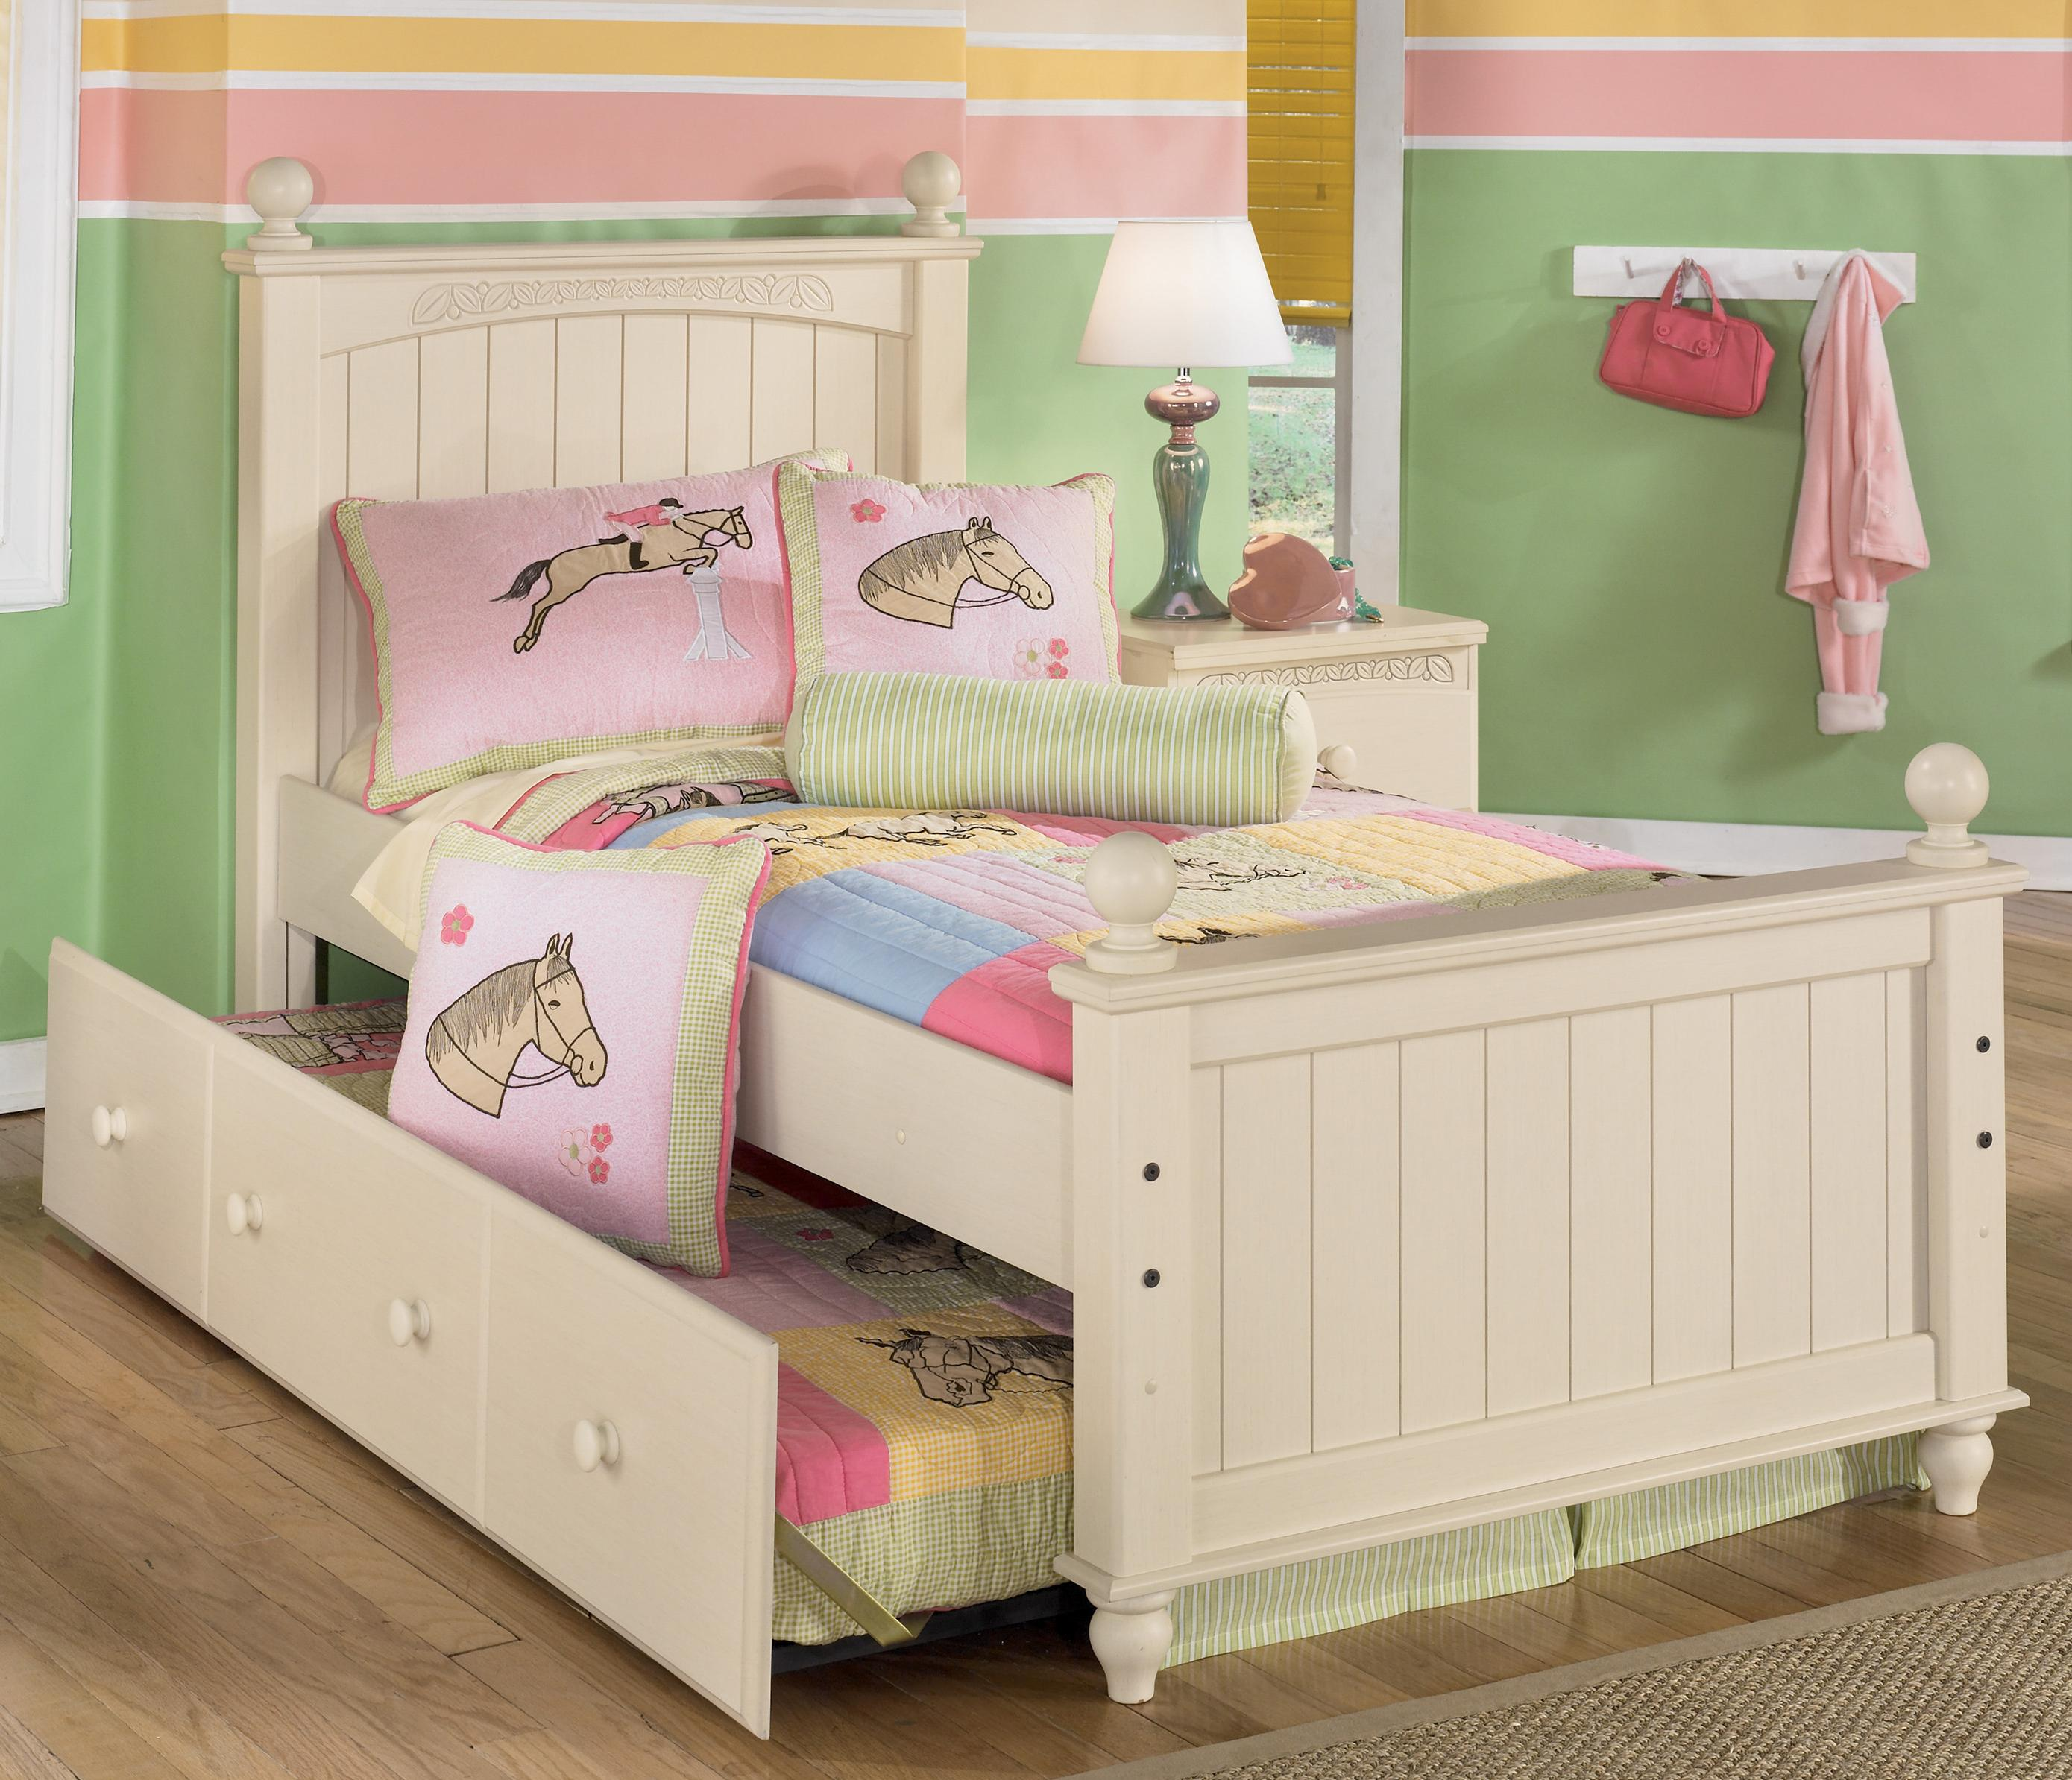 Signature Design by Ashley Cottage Retreat Twin Poster Bed with Trundle - Item Number: B213-52N+51N+83N+50+B100-82